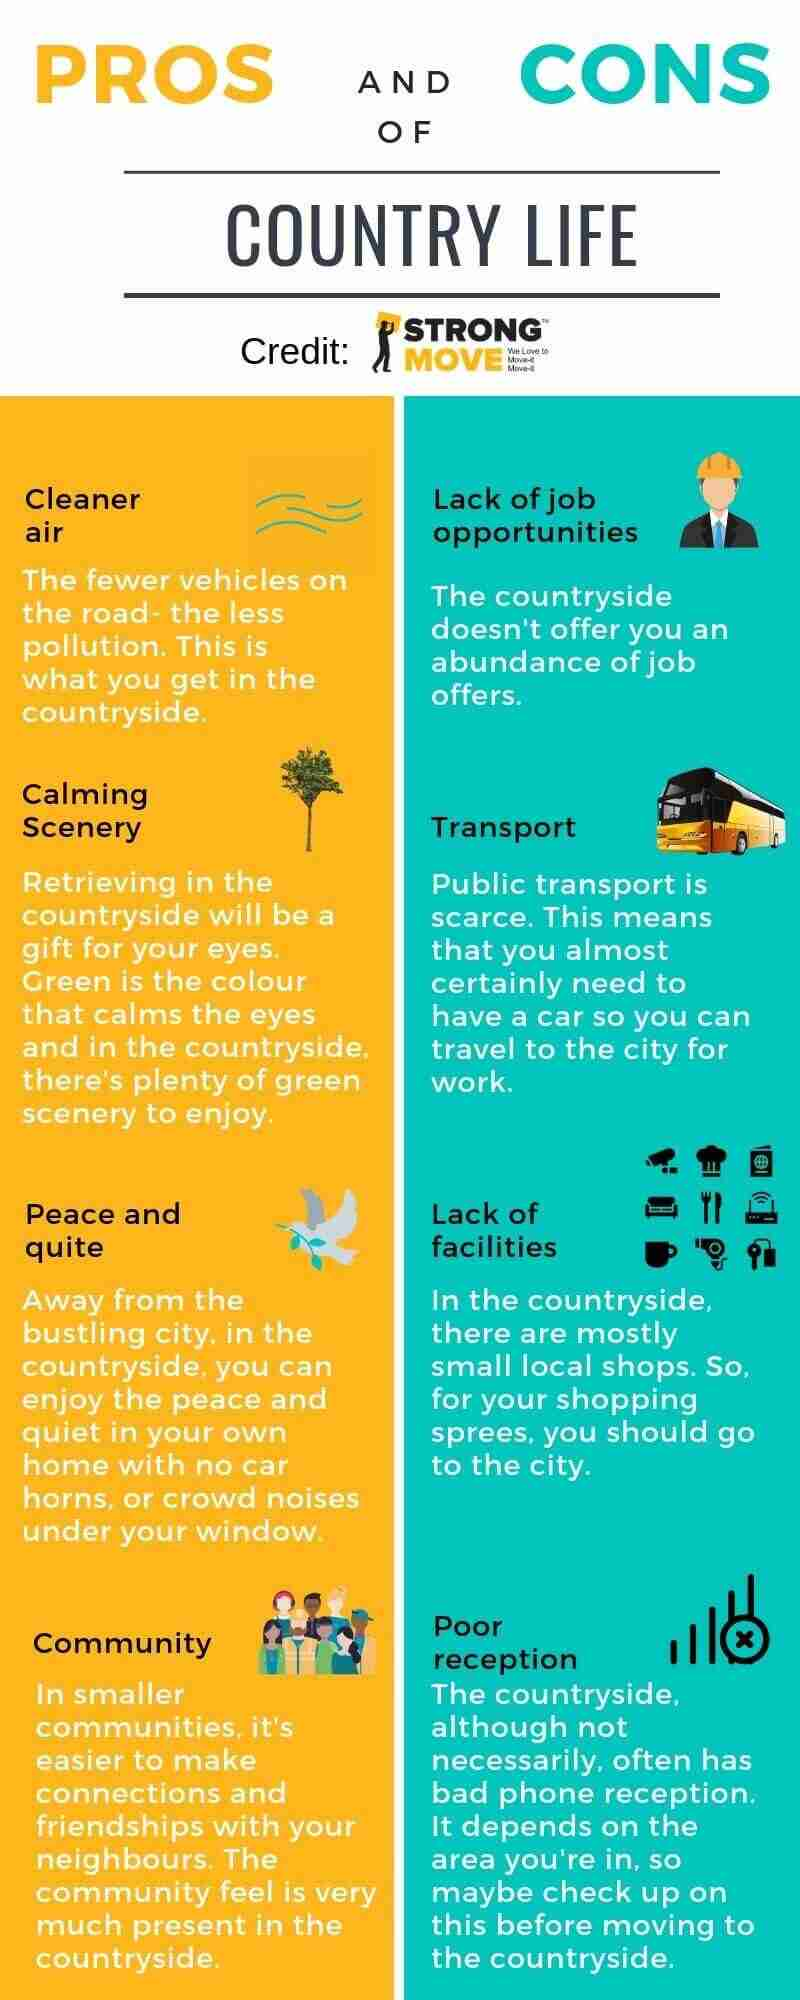 Pros and Cons of Country Life Info-graphic